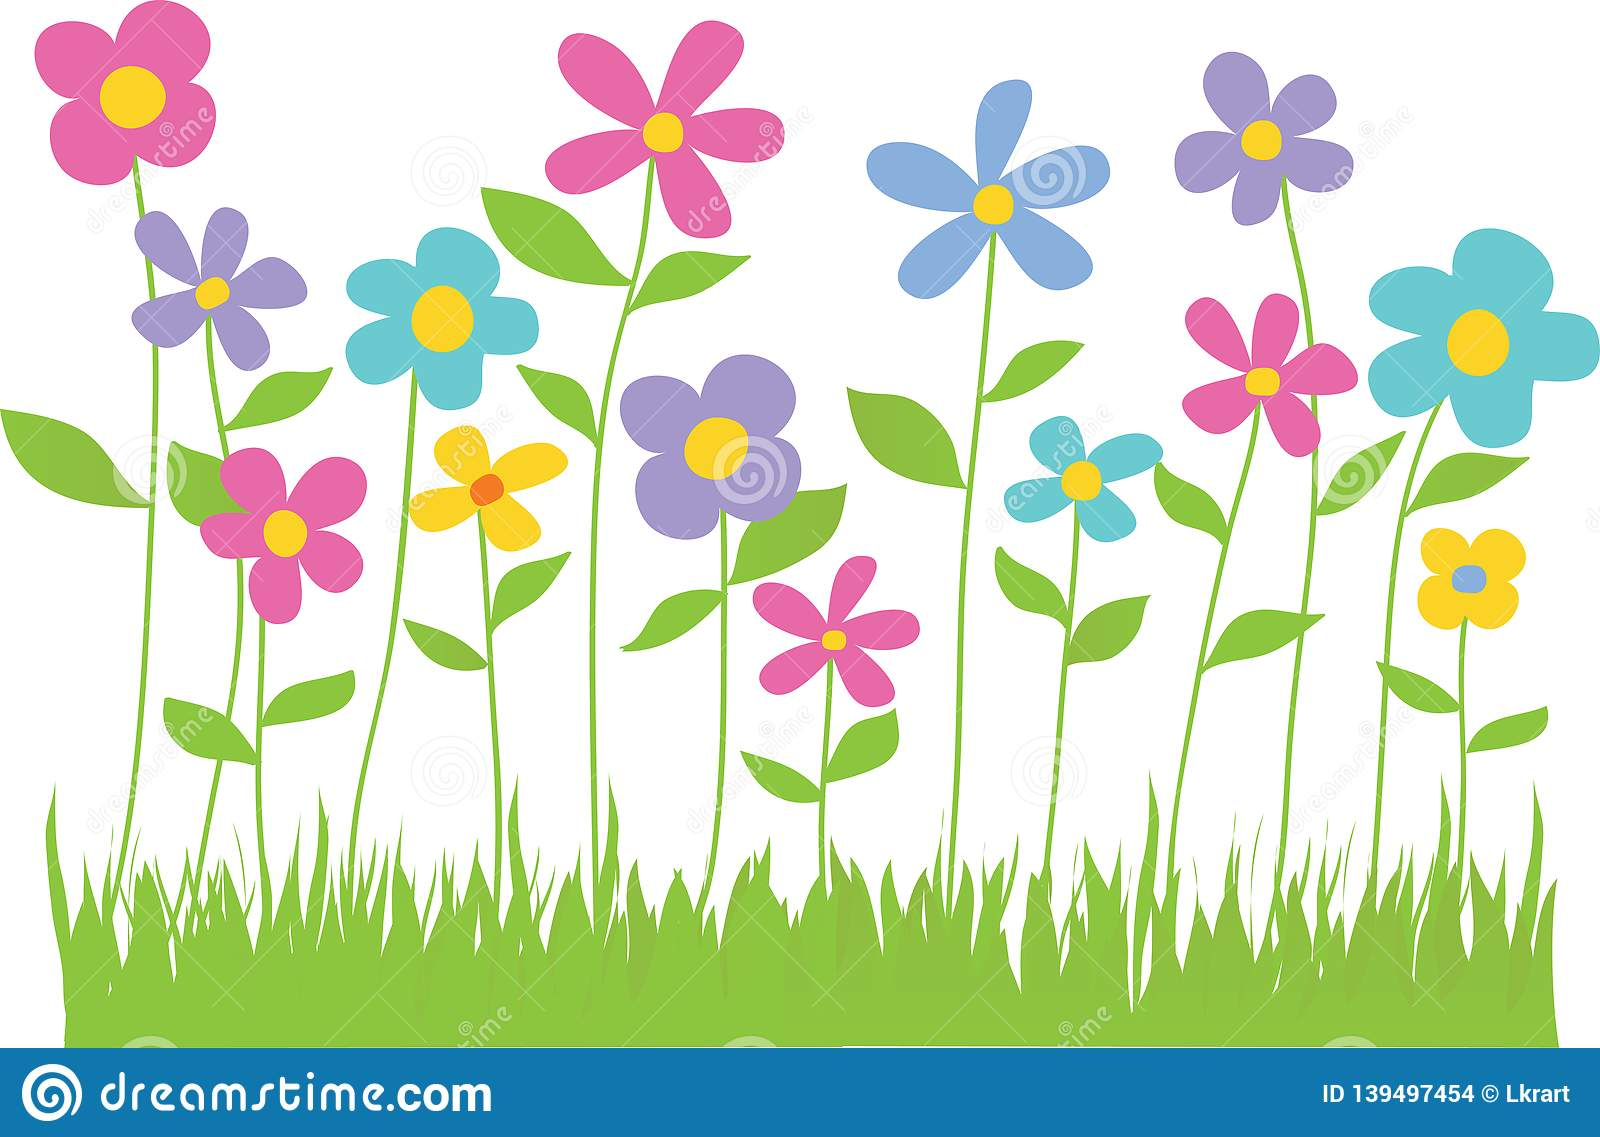 Spring Flowers With Grass Border Stock Illustration.